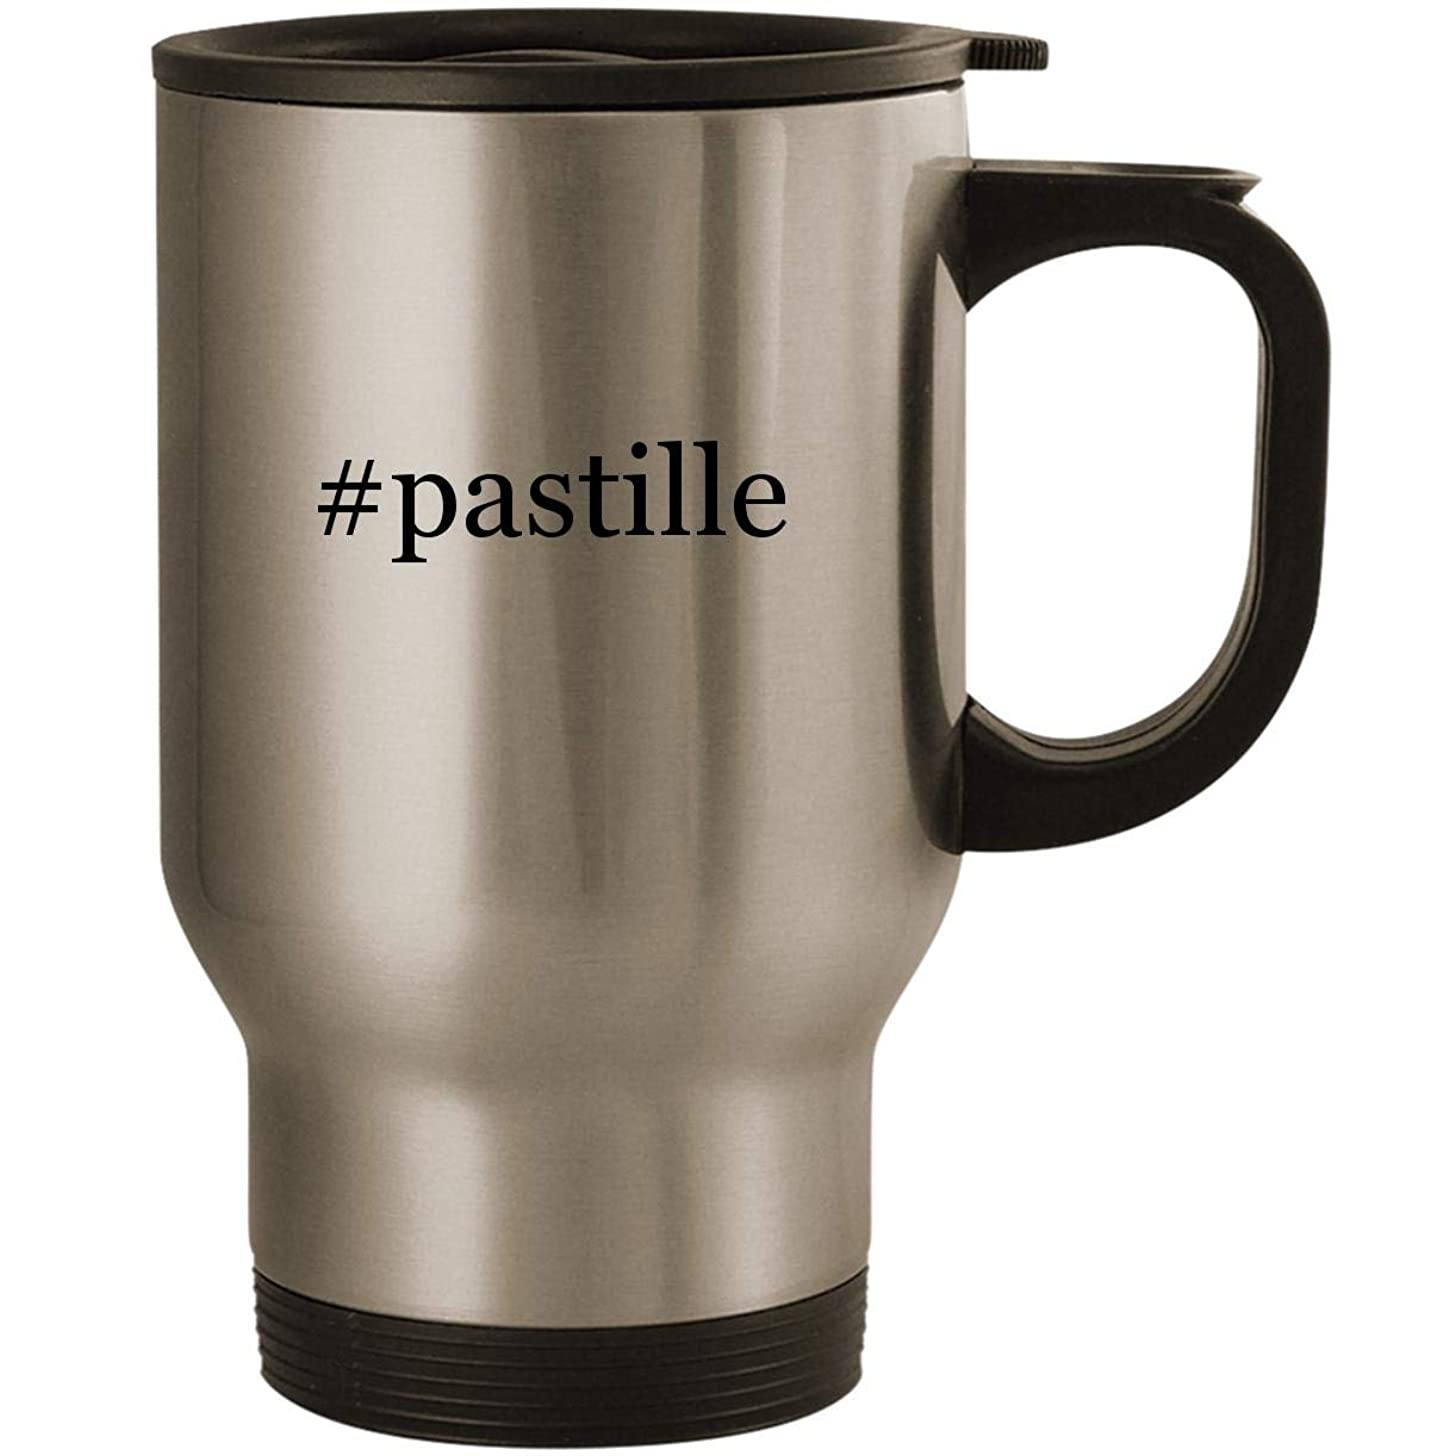 #pastille - Stainless Steel 14oz Road Ready Travel Mug, Silver